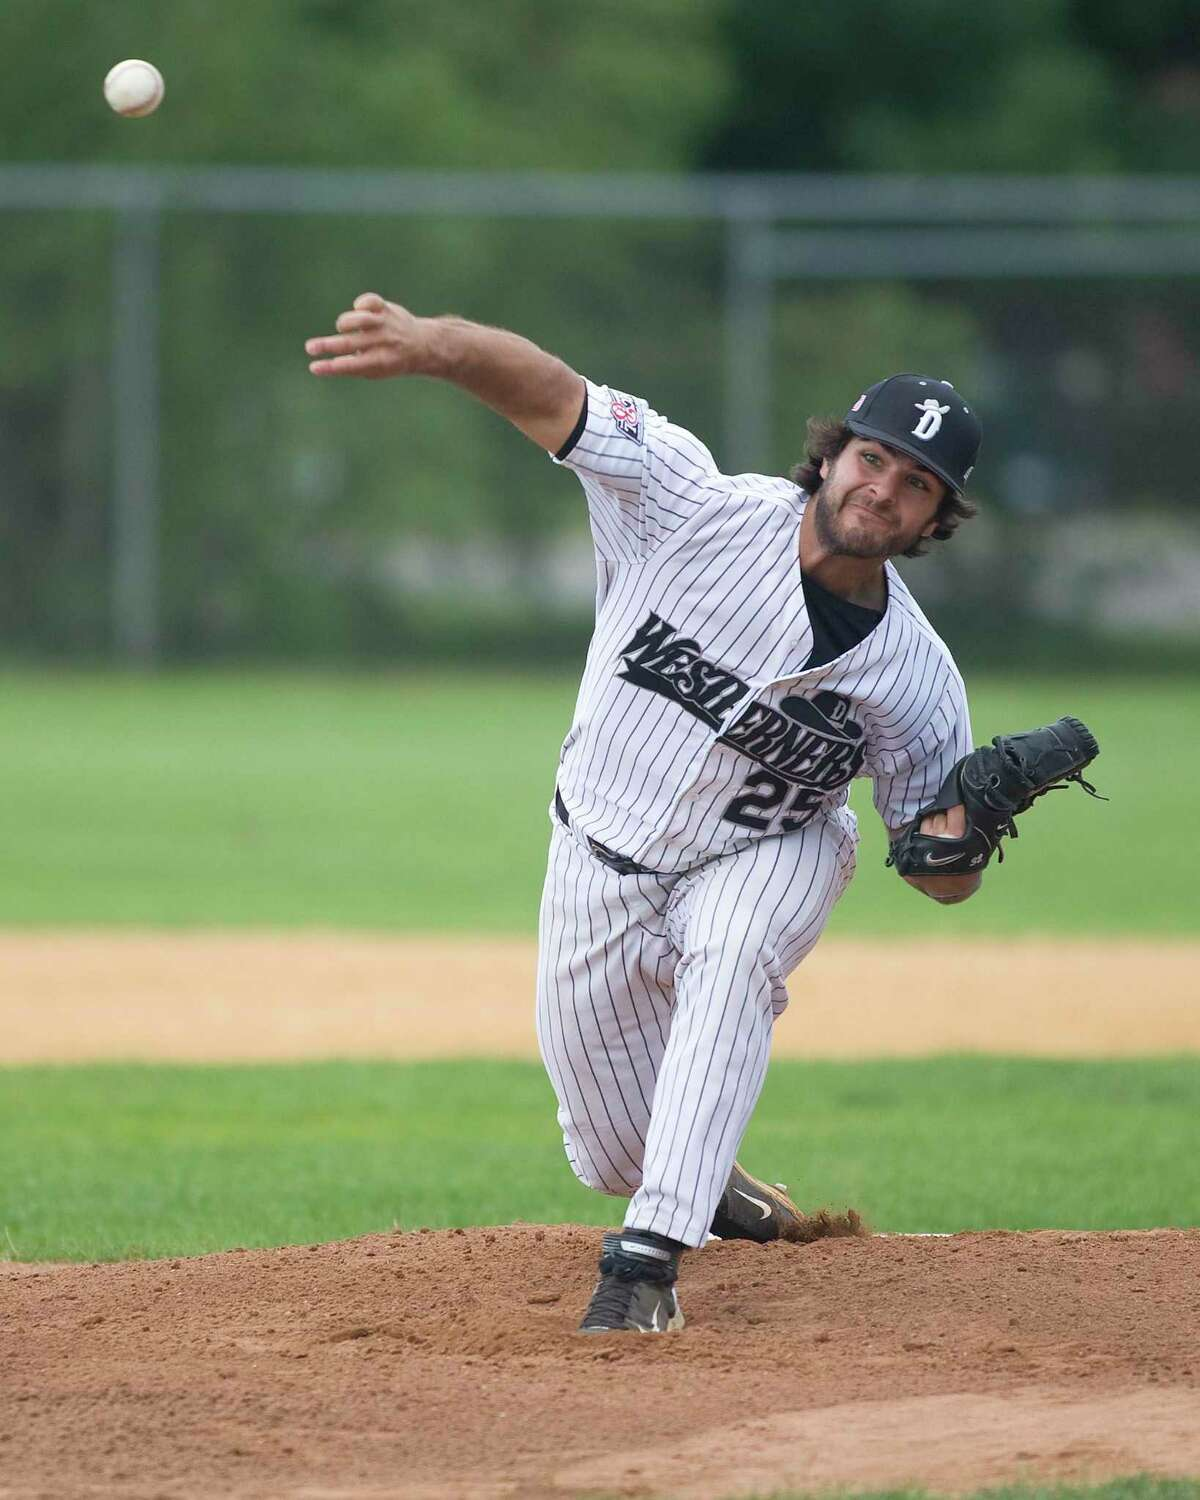 Former Danbury Westerner Mike Ford is currently in the big leagues as a first baseman with the New York Yankees.